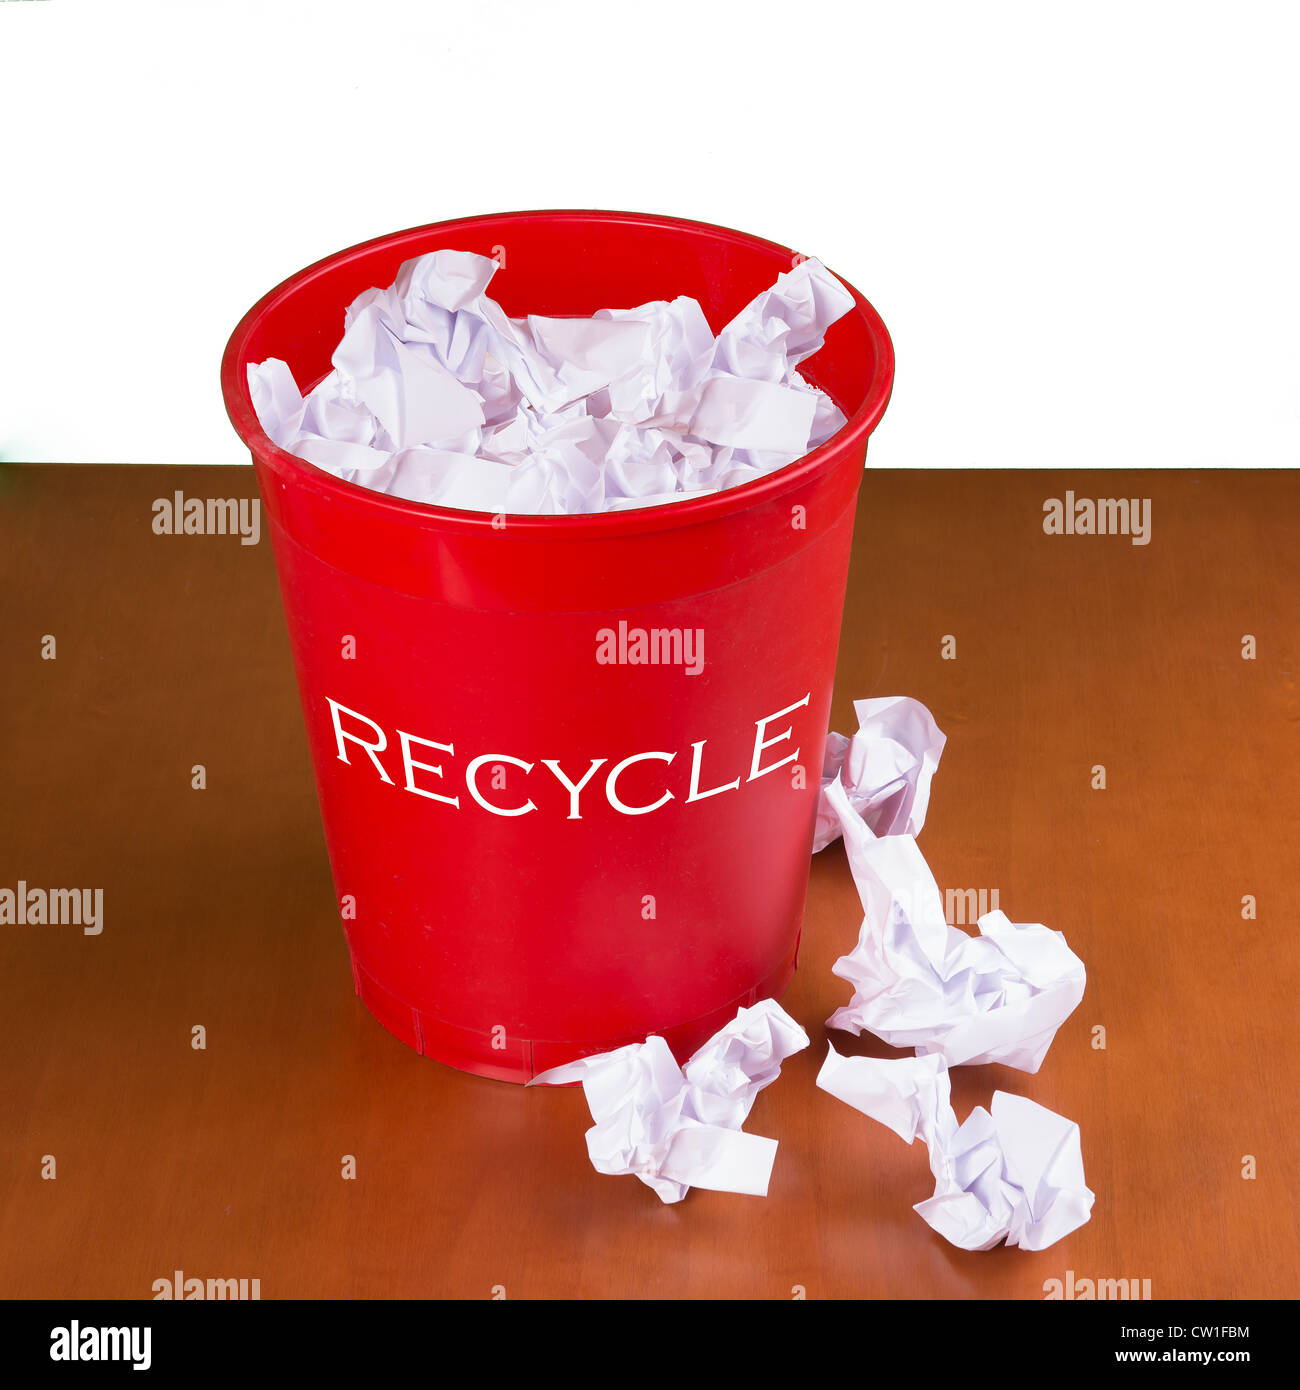 recycle basket - Stock Image